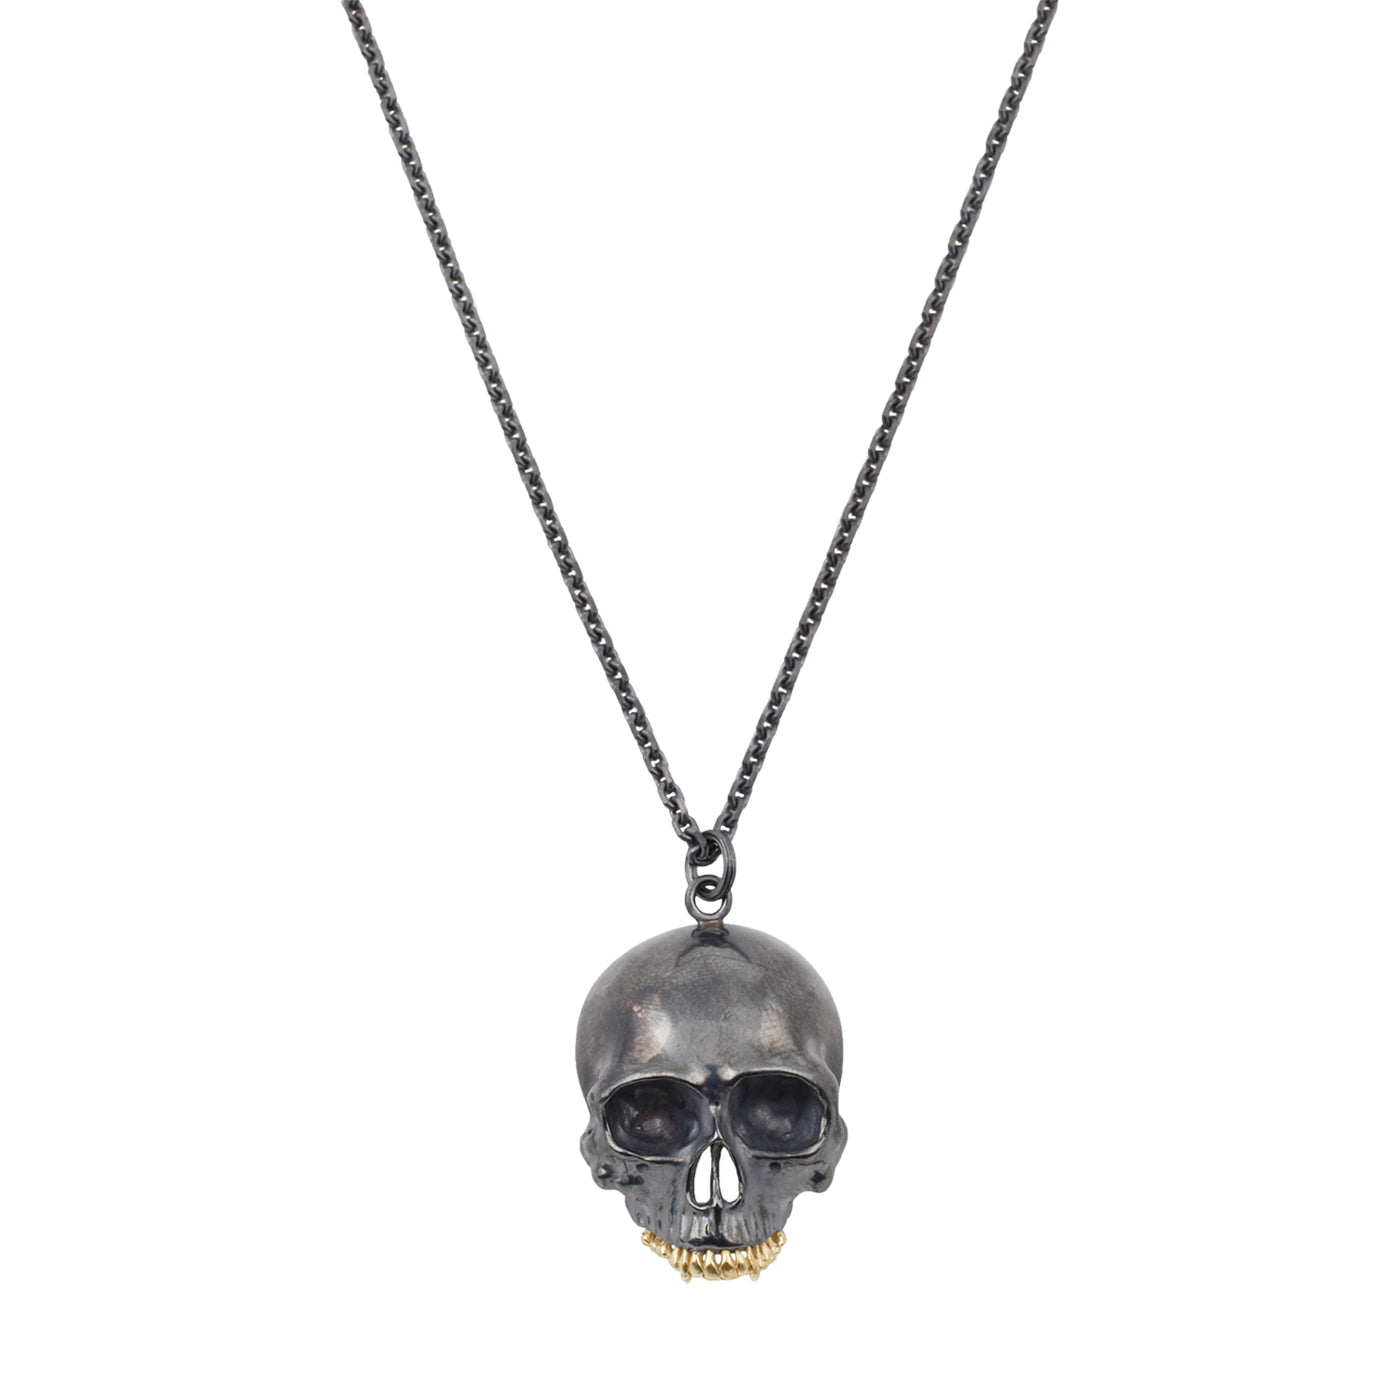 Anthony Lent oxidized sterling silver black skull pendant necklace